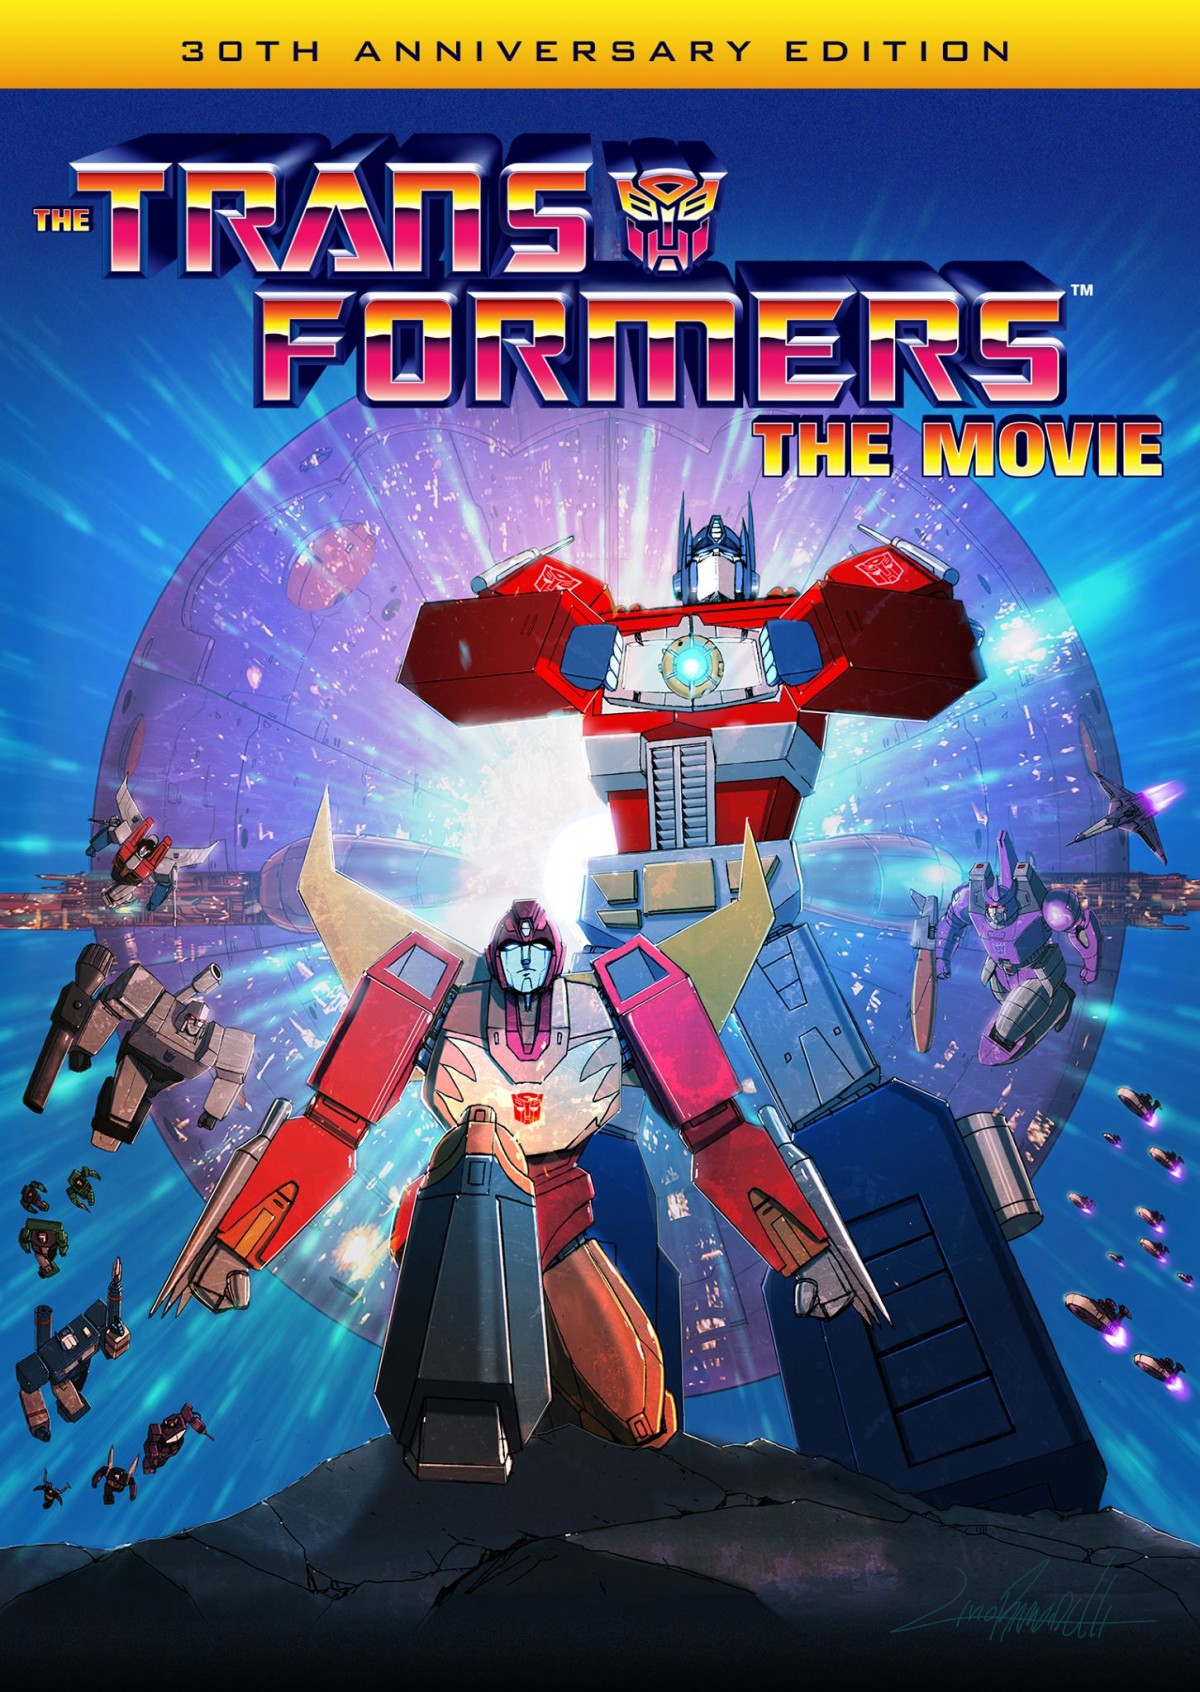 Transformers News: New artwork revealed for upcoming Transformers The Movie 30th Anniversary Edition Blu-Ray and DVD